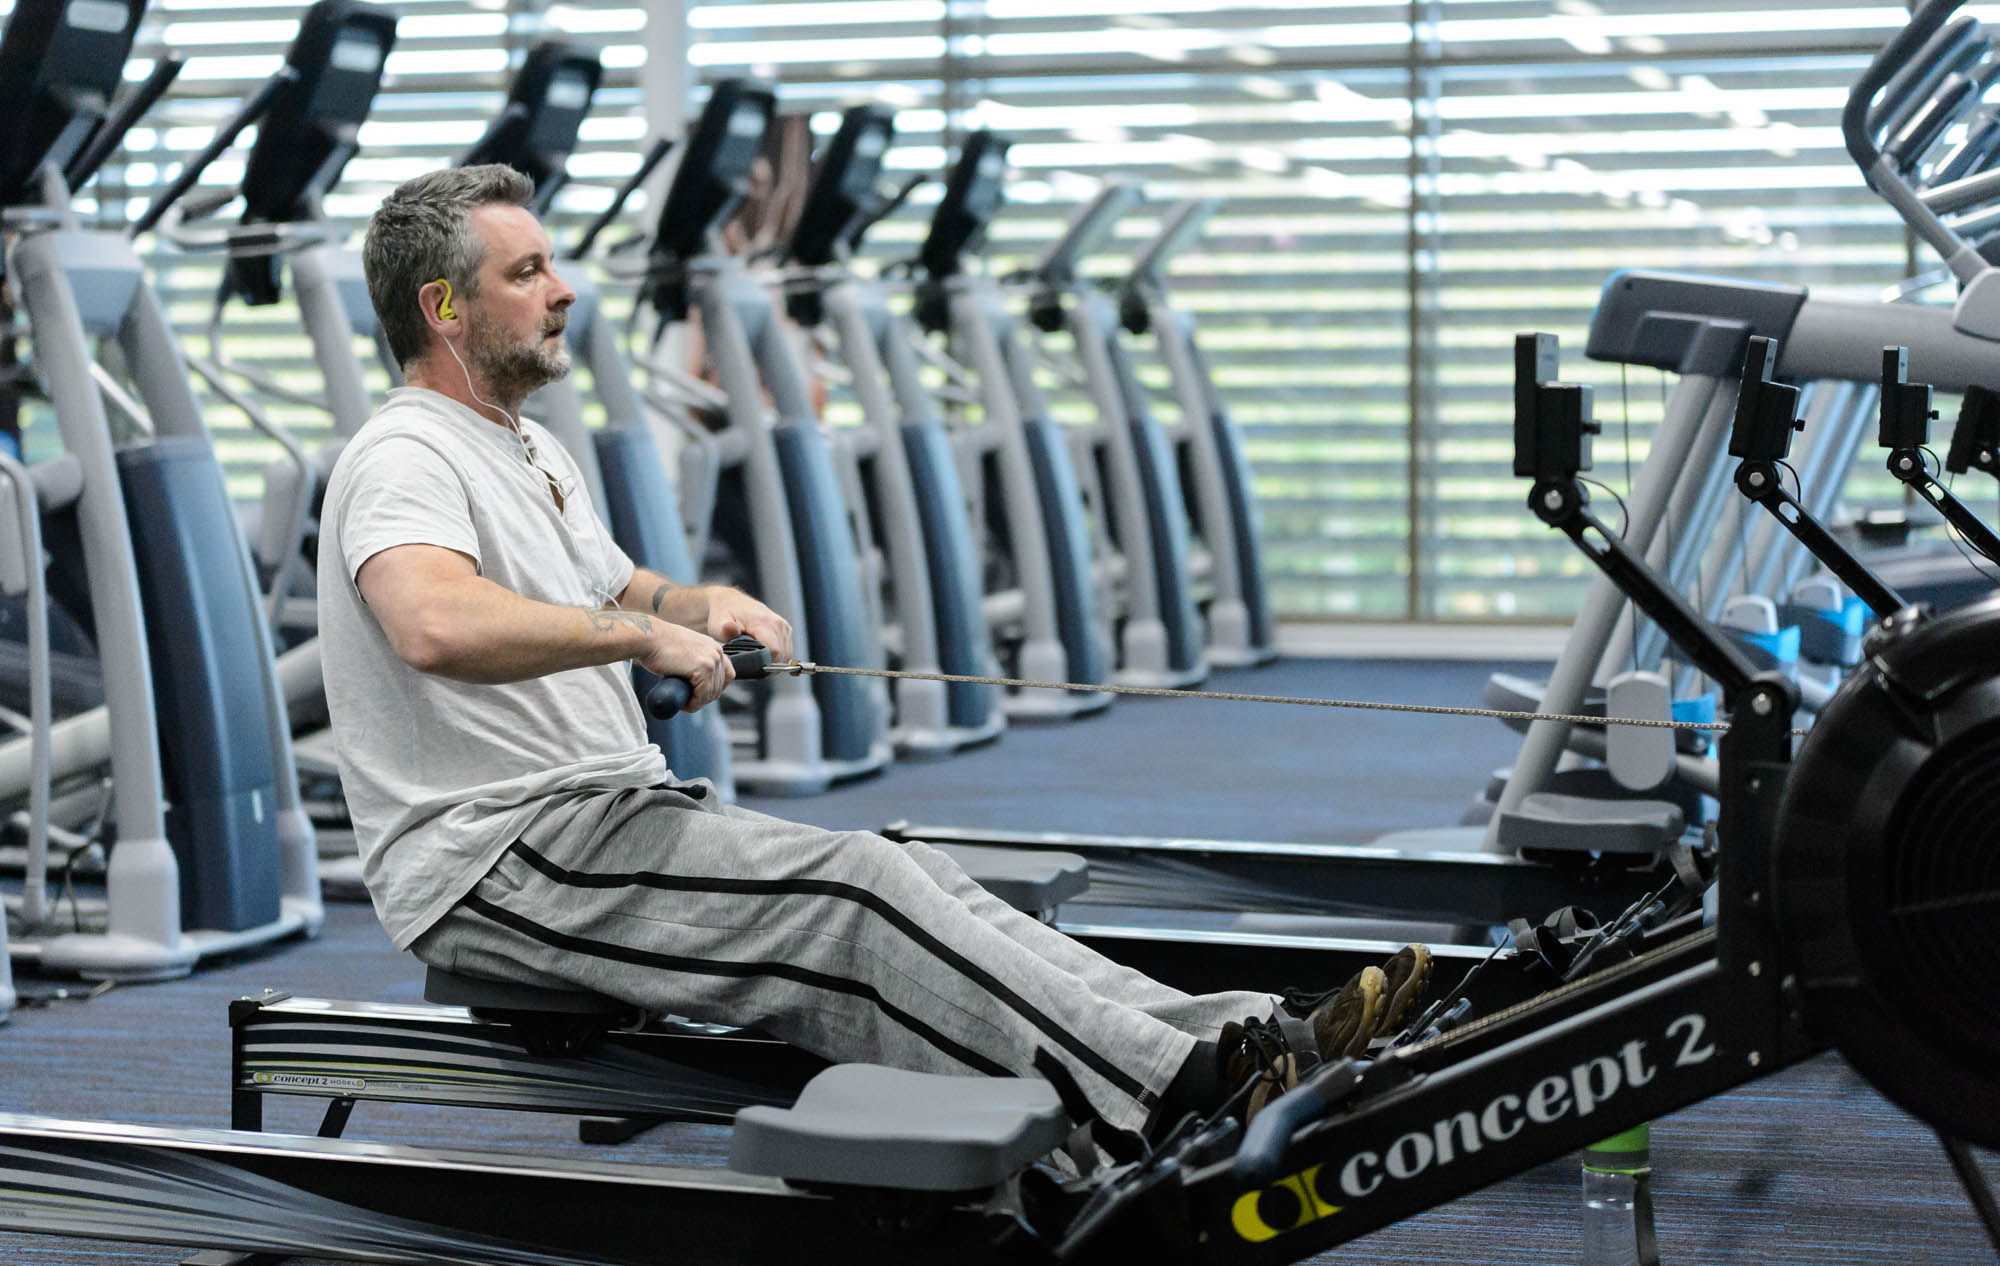 A man using a rowing machine in a gym